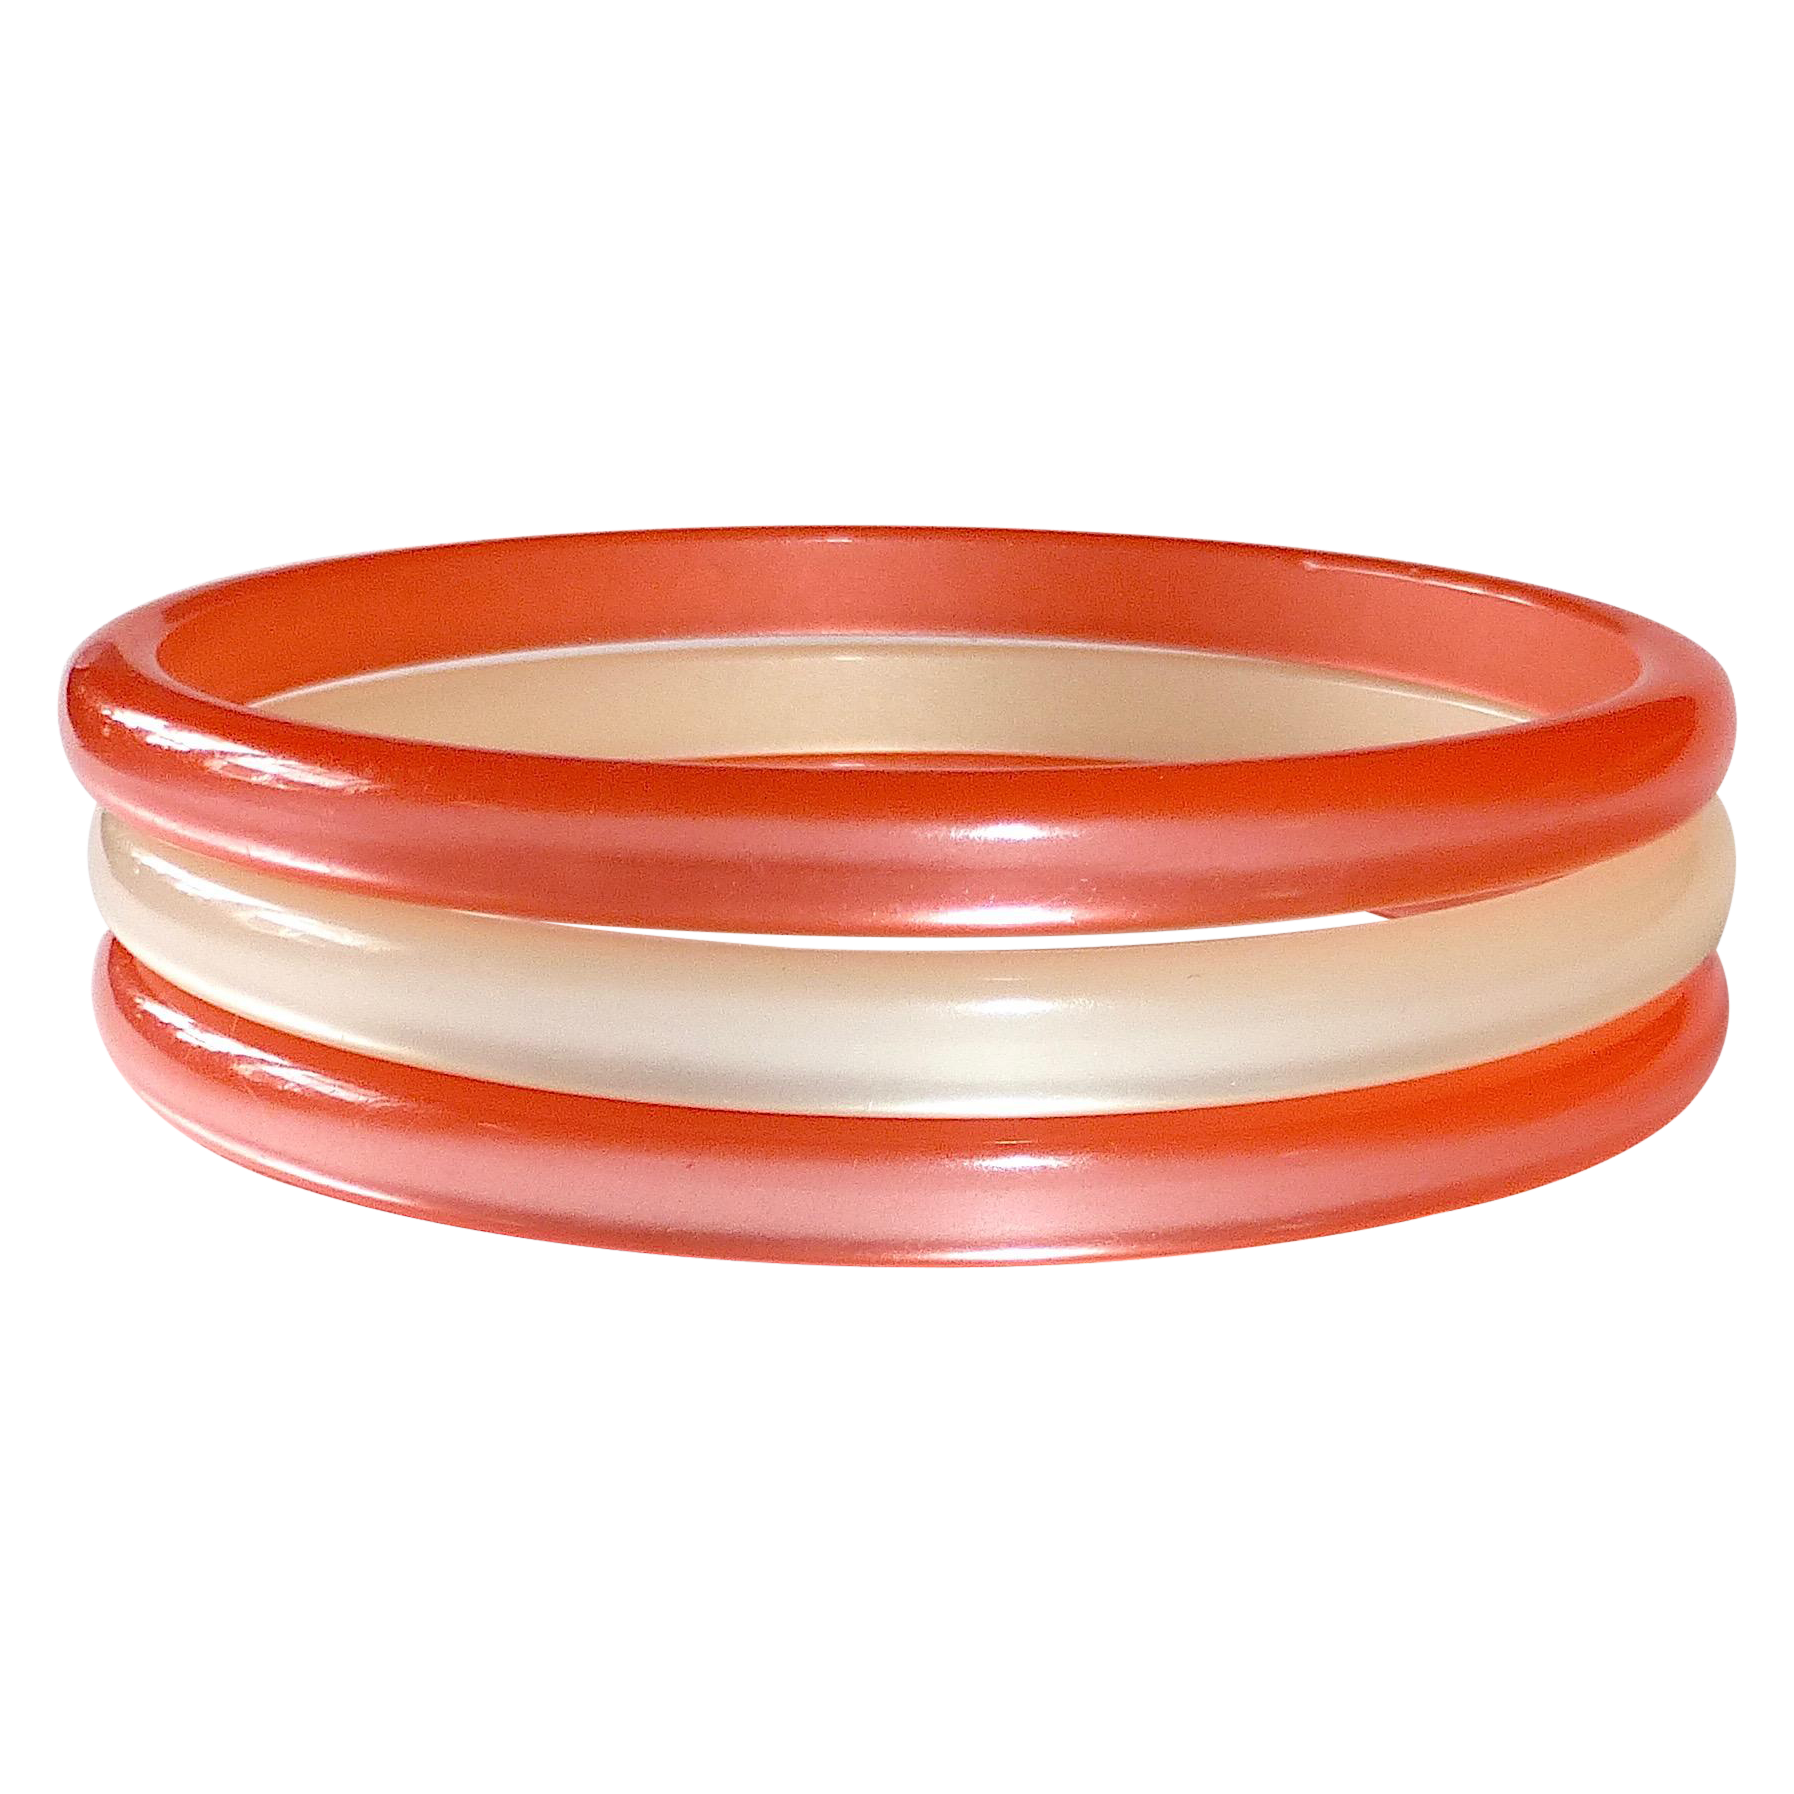 Luminous 1960s Moonglow 'Creamsicle' Bangles